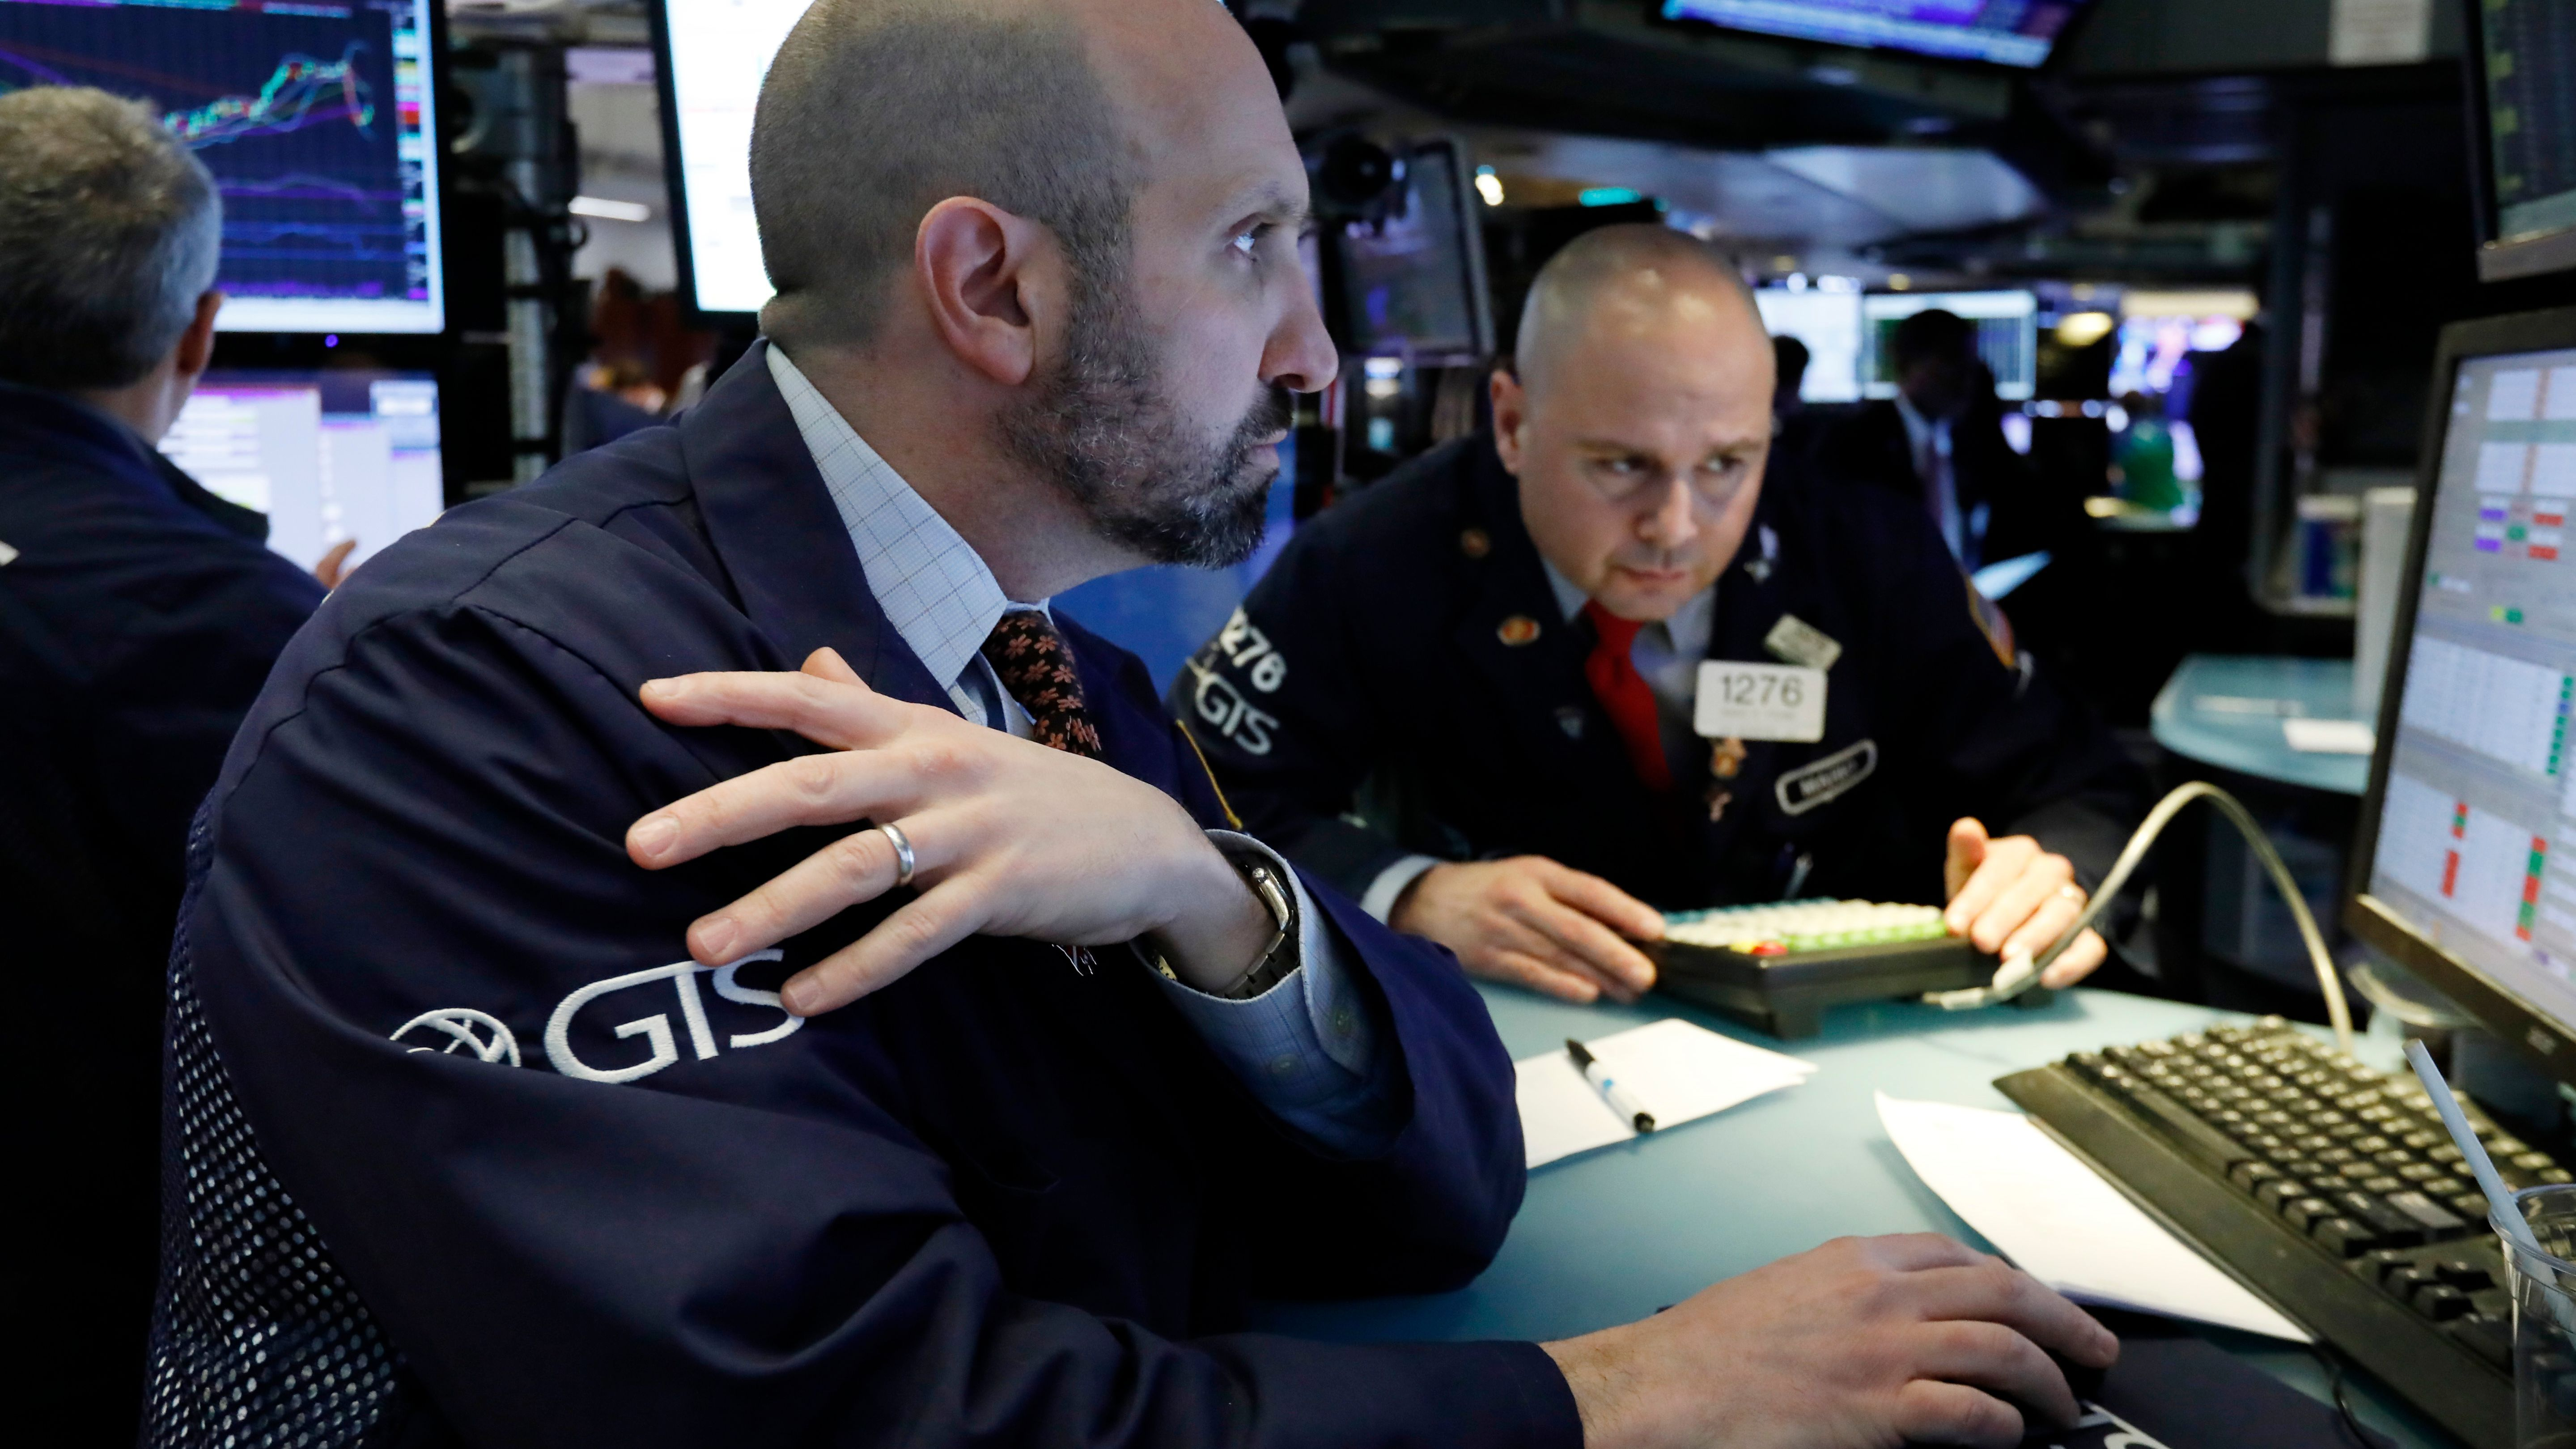 Dow Falls As Stock Market Moved Lower Sparked By Federal Reserve Interest Rate Decision Usa Today Dow Falls As Stock Market Investing Marketing Wall Street